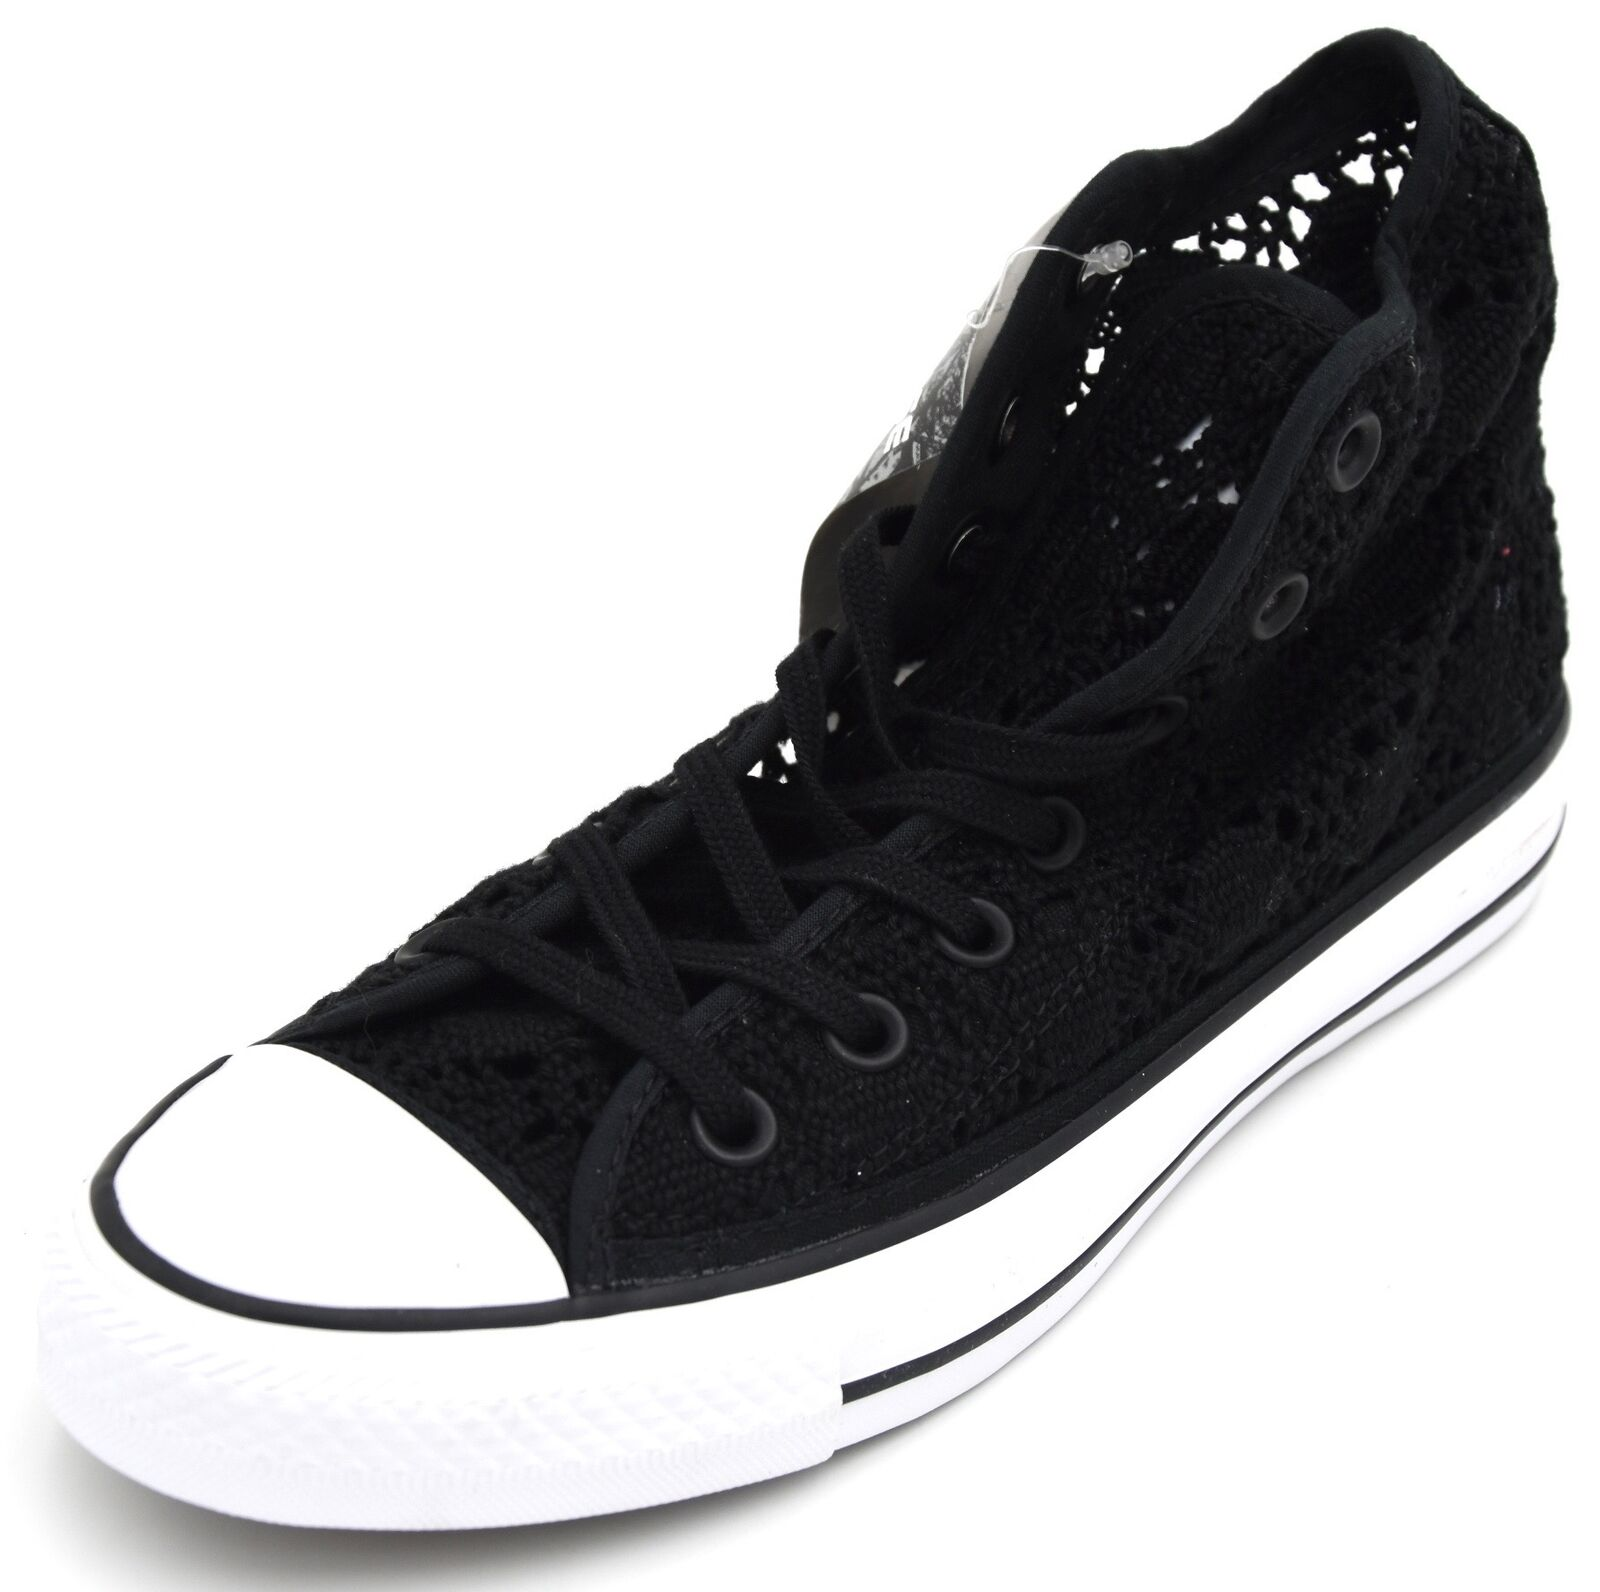 CONVERSE ALL STAR WOMAN WOMAN WOMAN SNEAKER SHOES CASUAL CODE CT SPECIALTY HI WITHOUT BOX ecb714